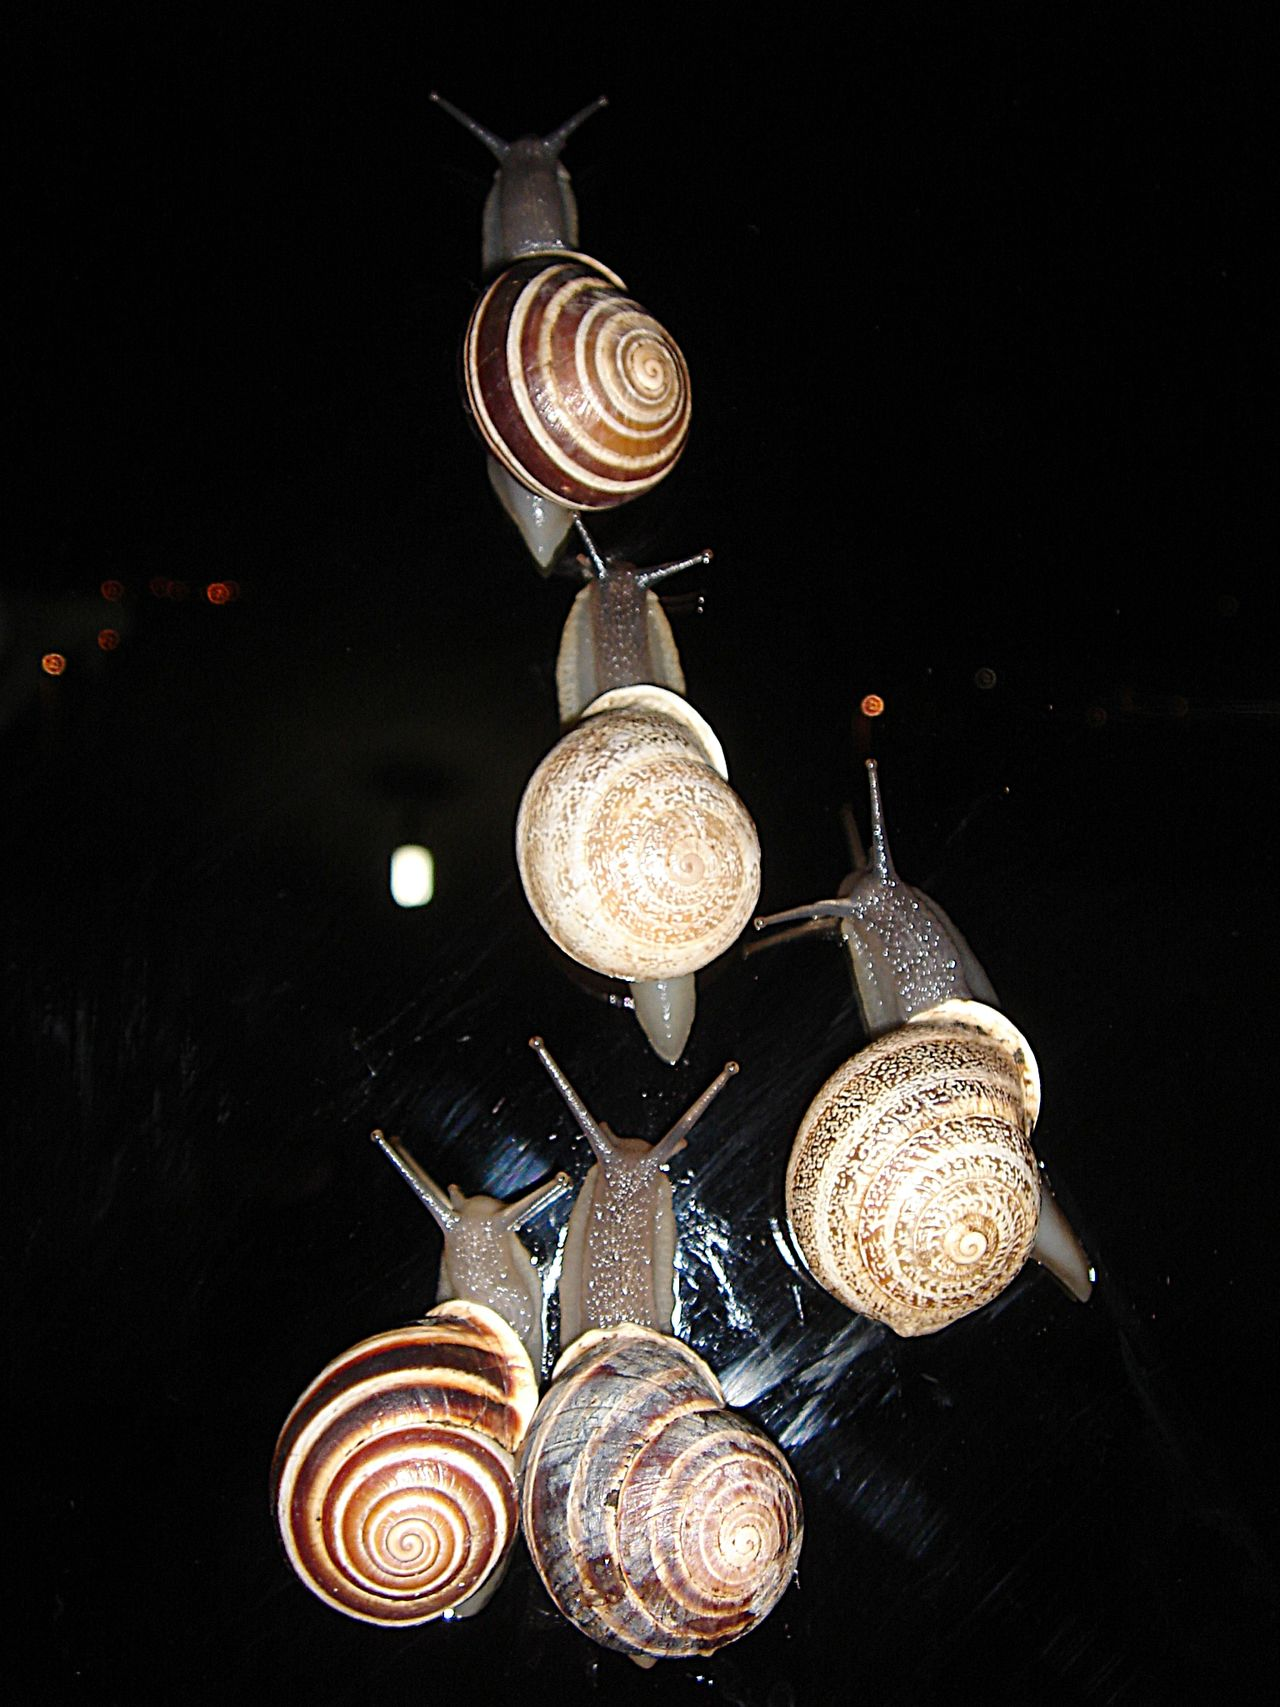 Art Art Numerique Close-up Electricity  Escargot Filament Fond Noir Hanging Illuminated Indoors  Light Bulb Lighting Equipment Low Angle View Luxury No People Old-fashioned Photo Flach